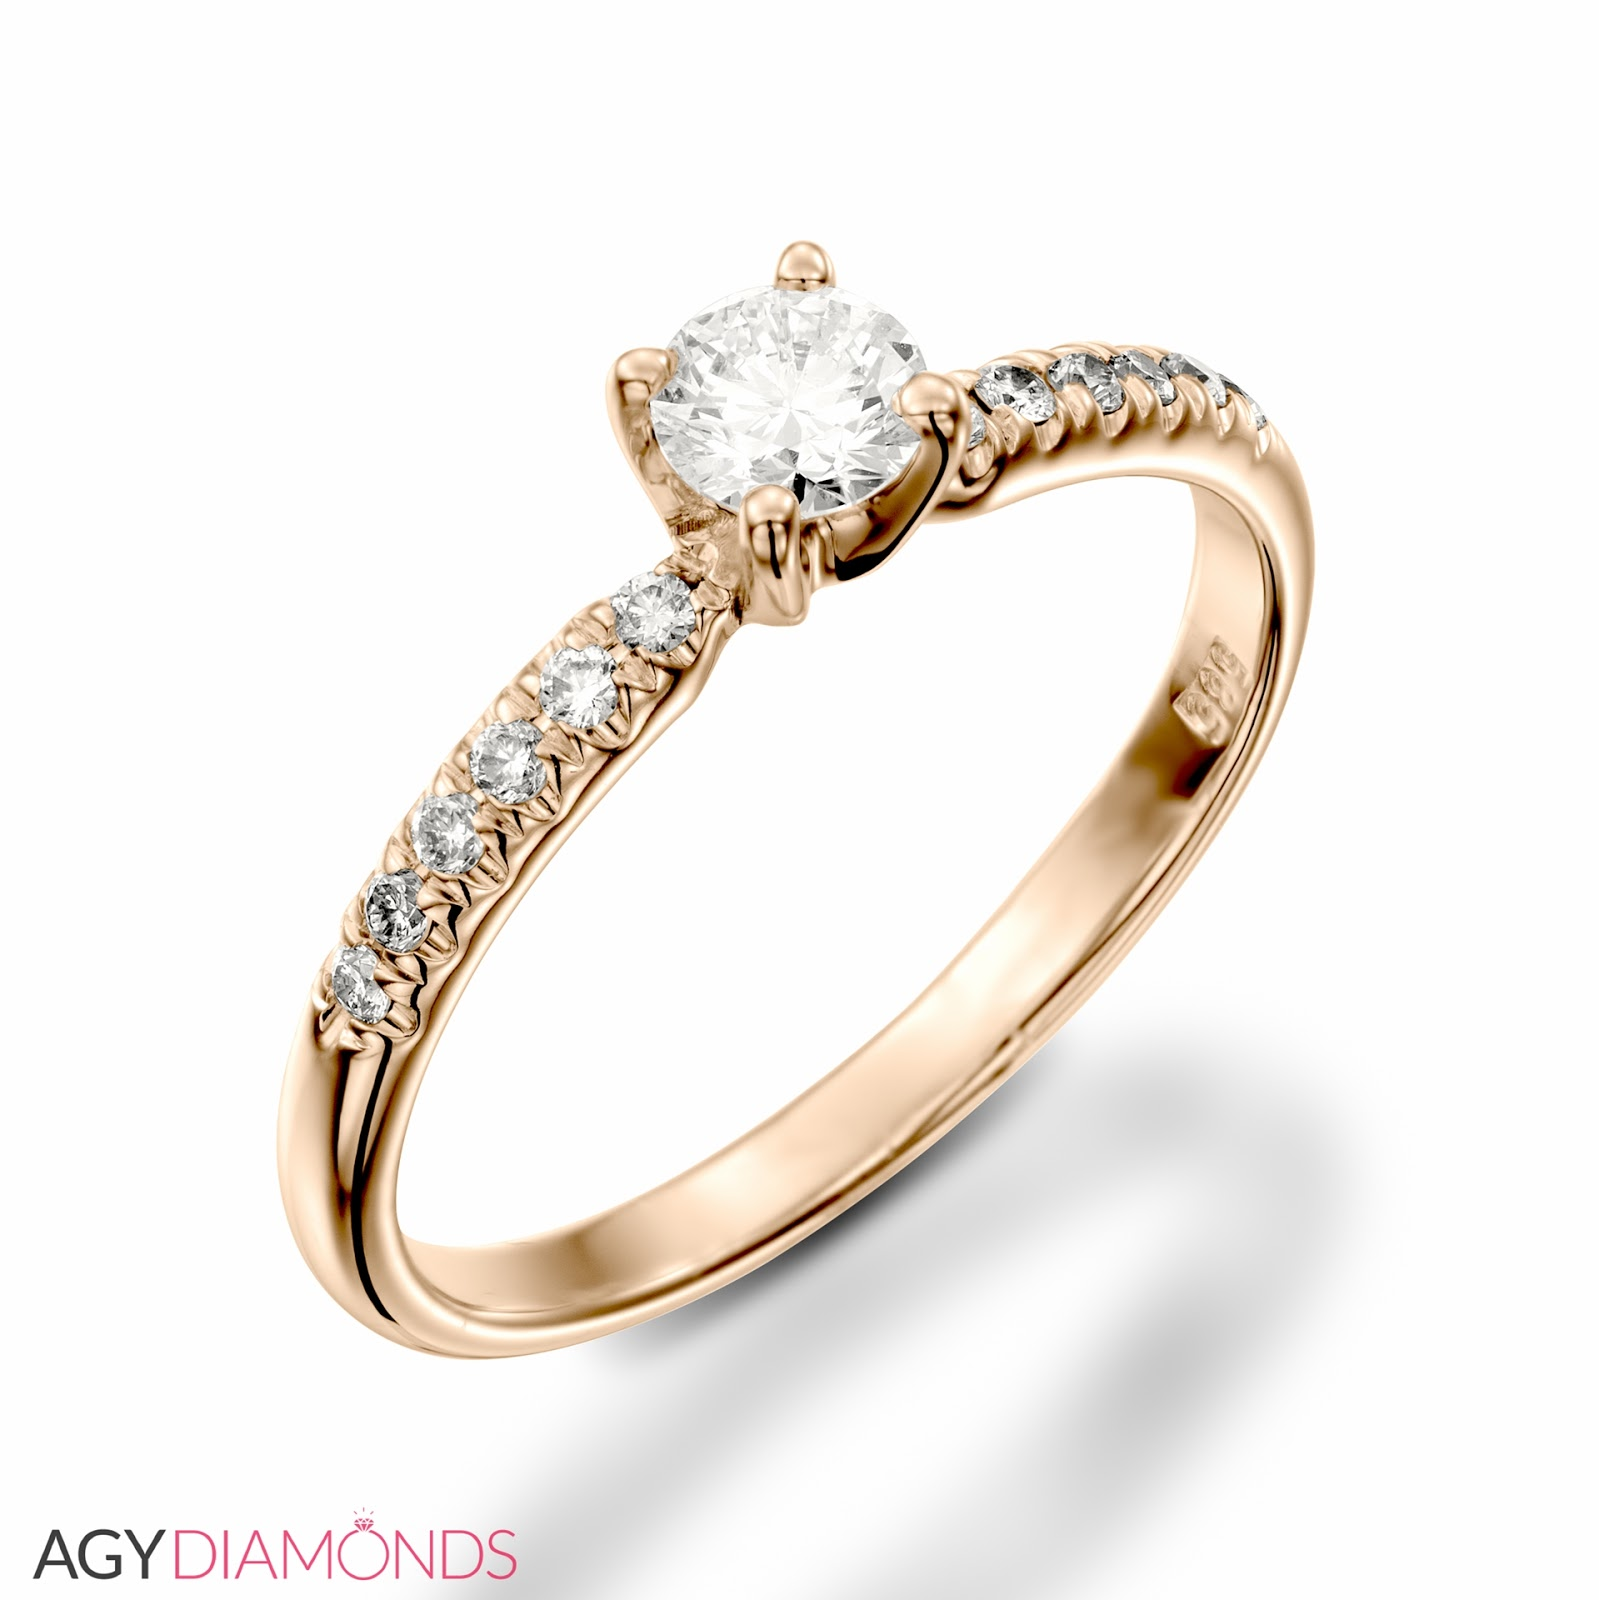 7 trends and innovations in engagement rings for brides 2020.